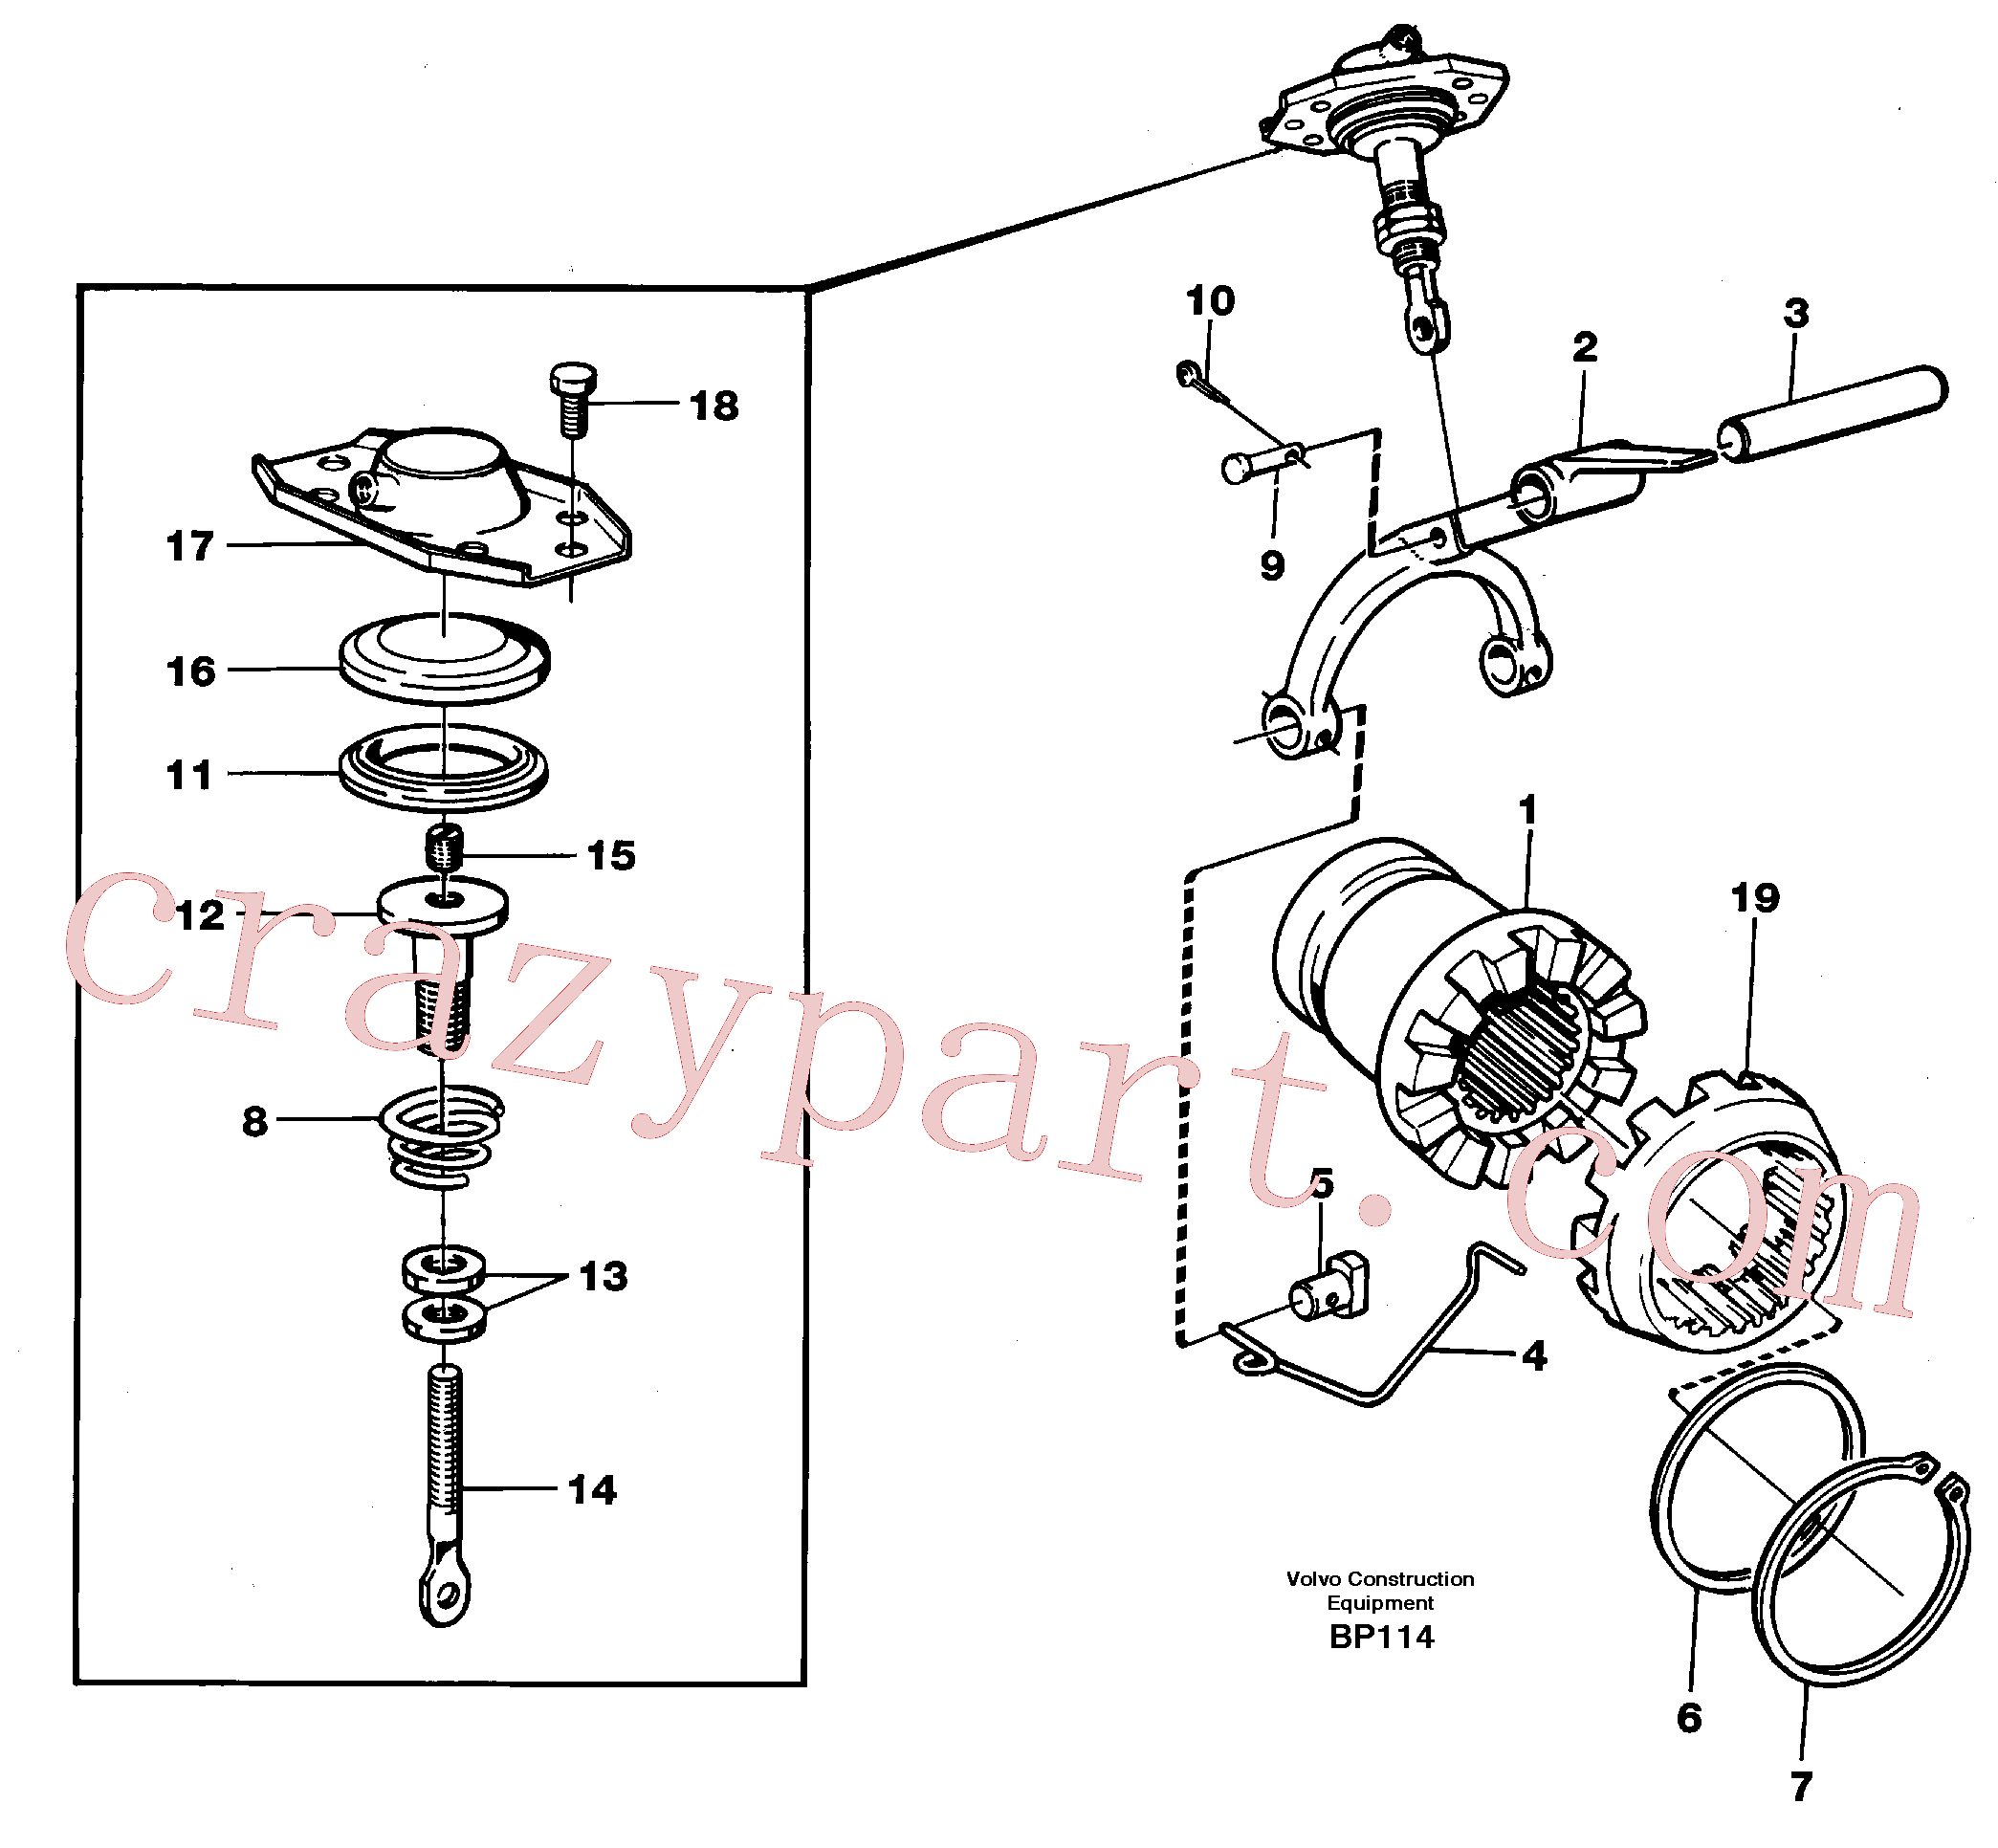 VOE7383971 for Volvo Differential lock(BP114 assembly)